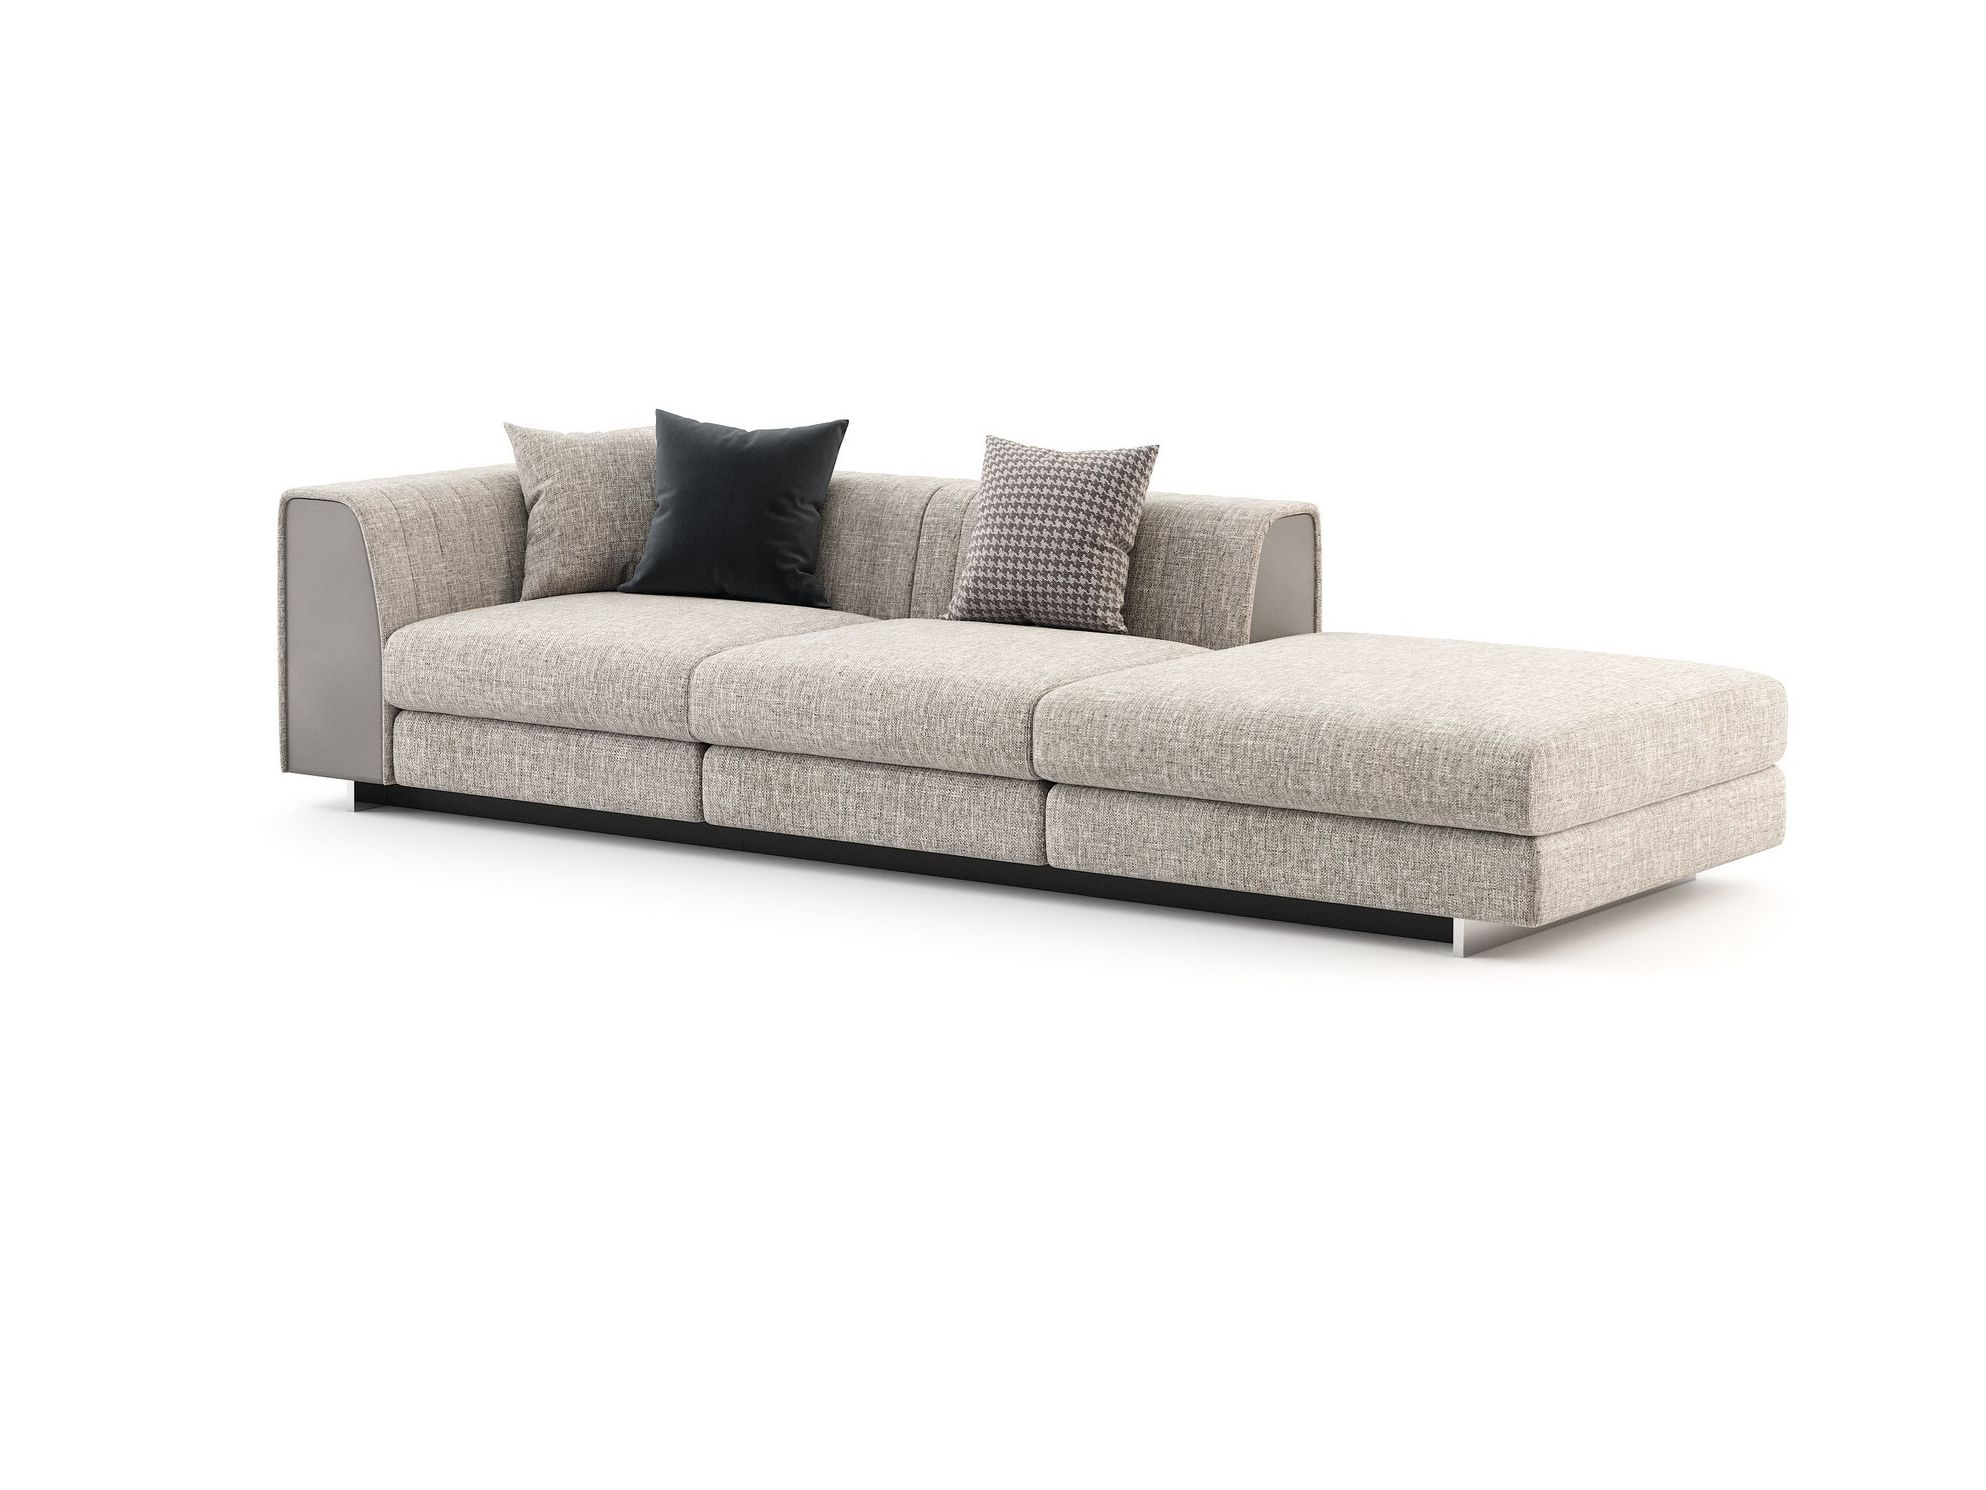 Harry Fabric Sofa Harry Collection By Laskasas Sofa Fabric Sofa Types Of Sofas